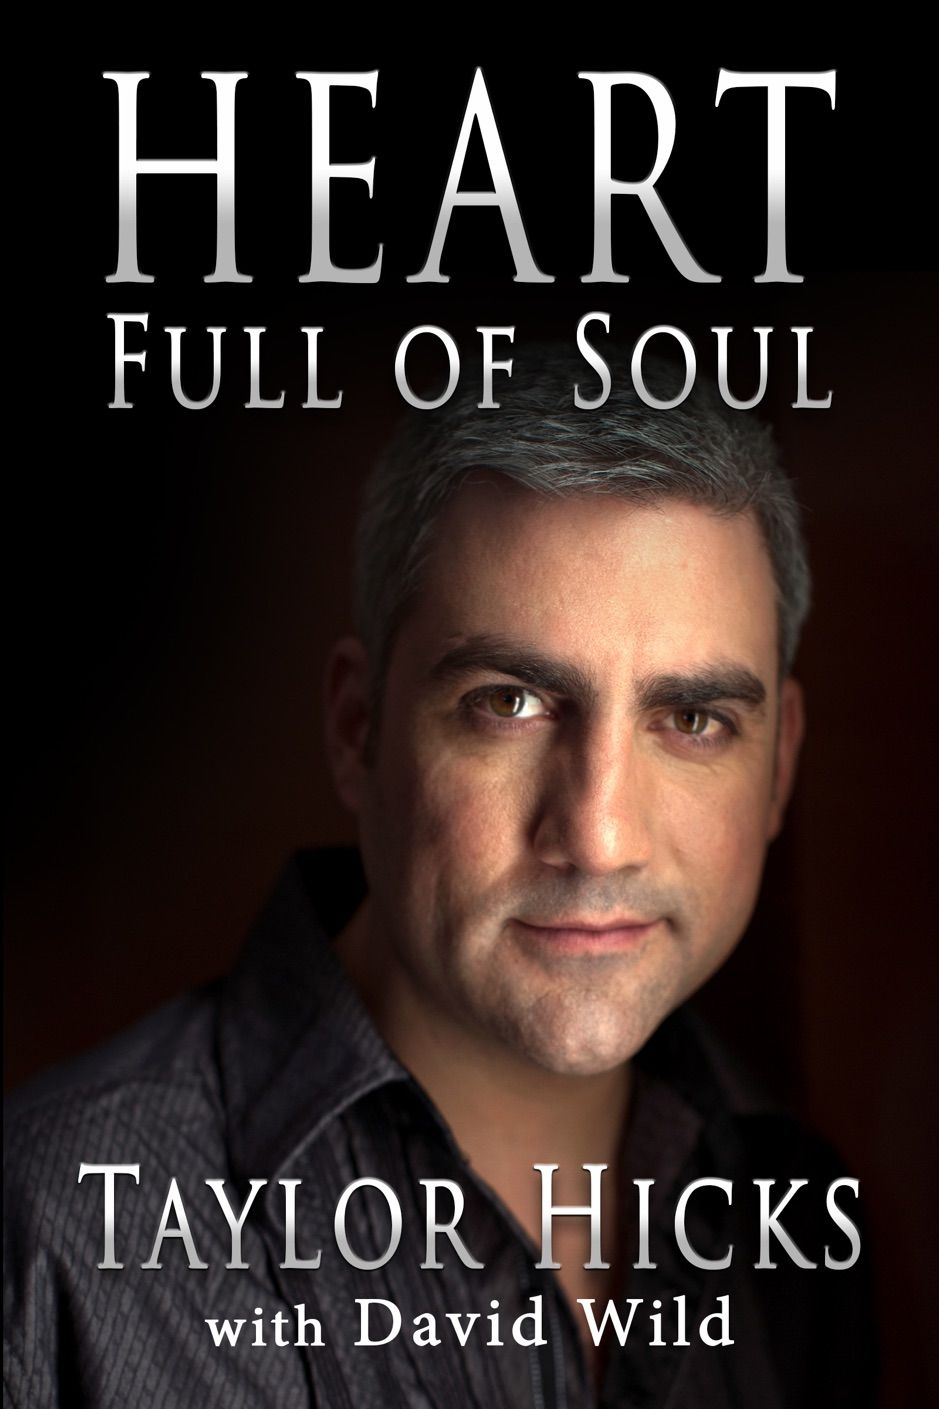 âŽHeart Full of Soul An Inspirational Memoir About Finding Your Voice and Findin